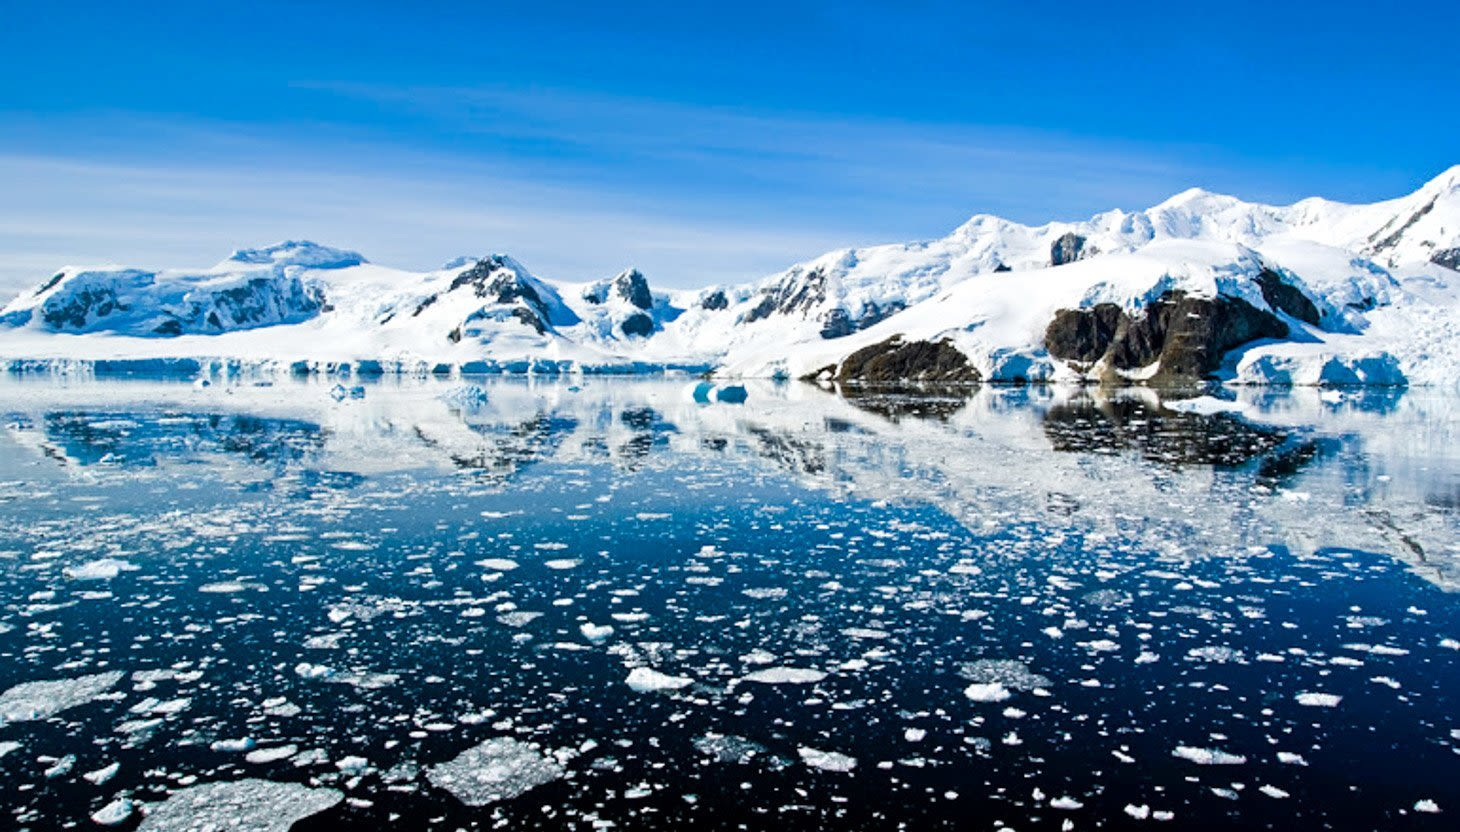 Antarctica mountains on edge of icy ocean bay